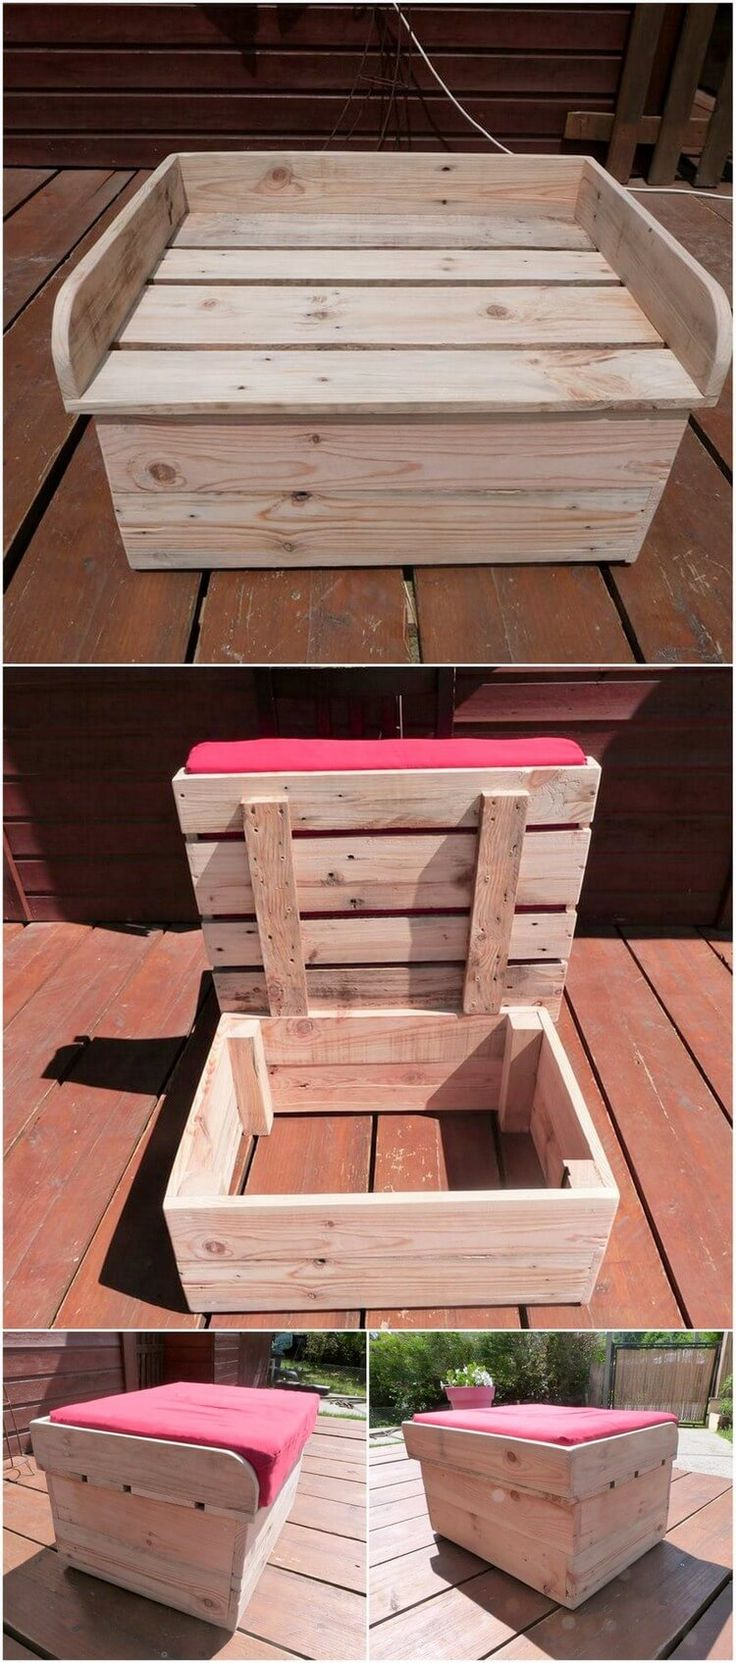 Wood Pallet Seat with Storage Box 3962